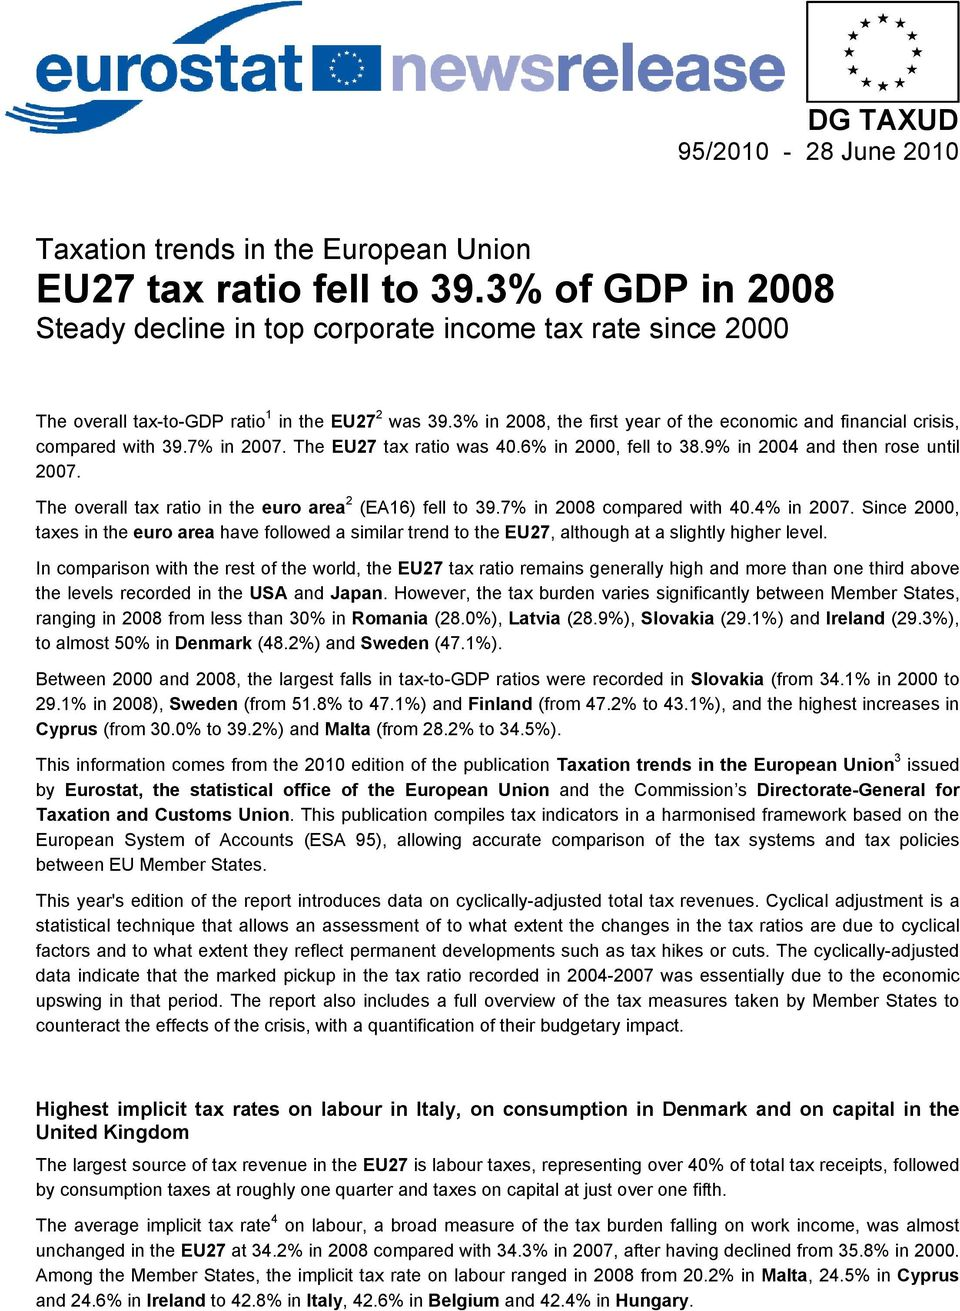 3% in 2008, the first year of the economic and financial crisis, compared with 39.7% in 2007. The EU27 tax ratio was 40.6% in 2000, fell to 38.9% in 2004 and then rose until 2007.